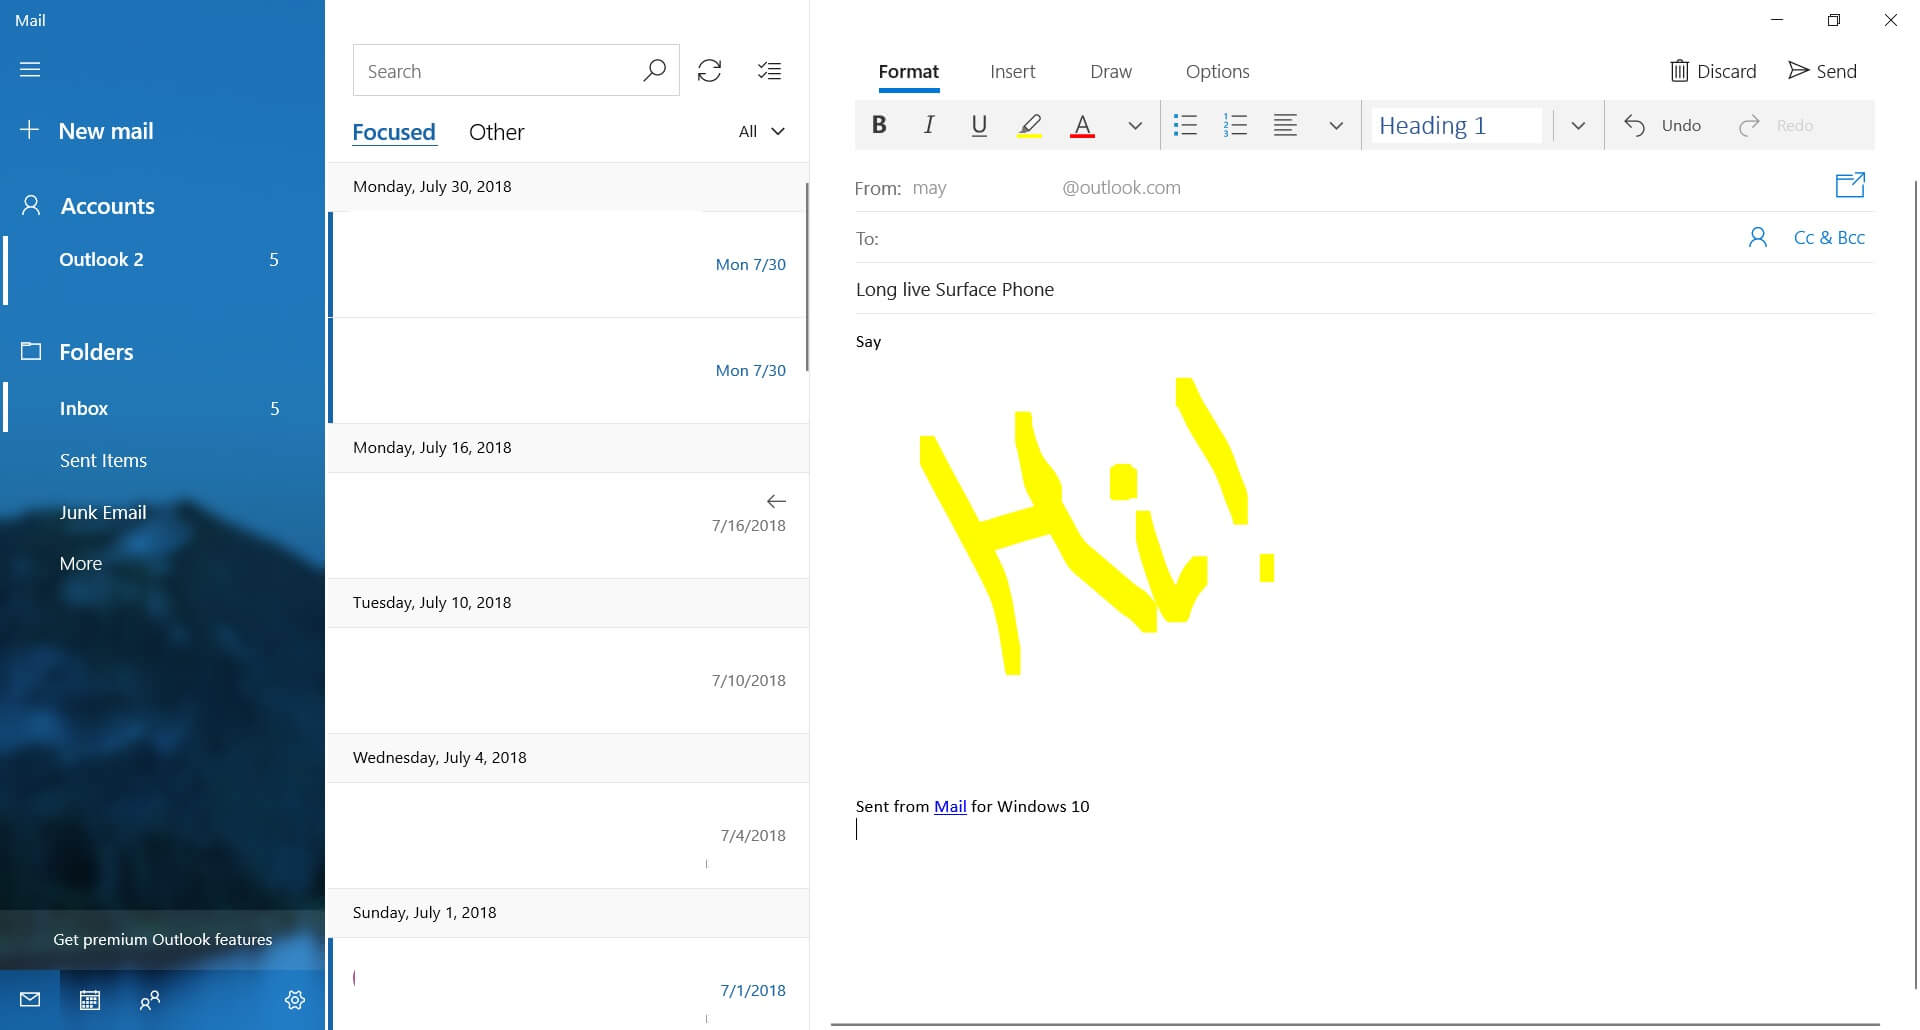 Windows 10 Mail app with drawing feature is now widely